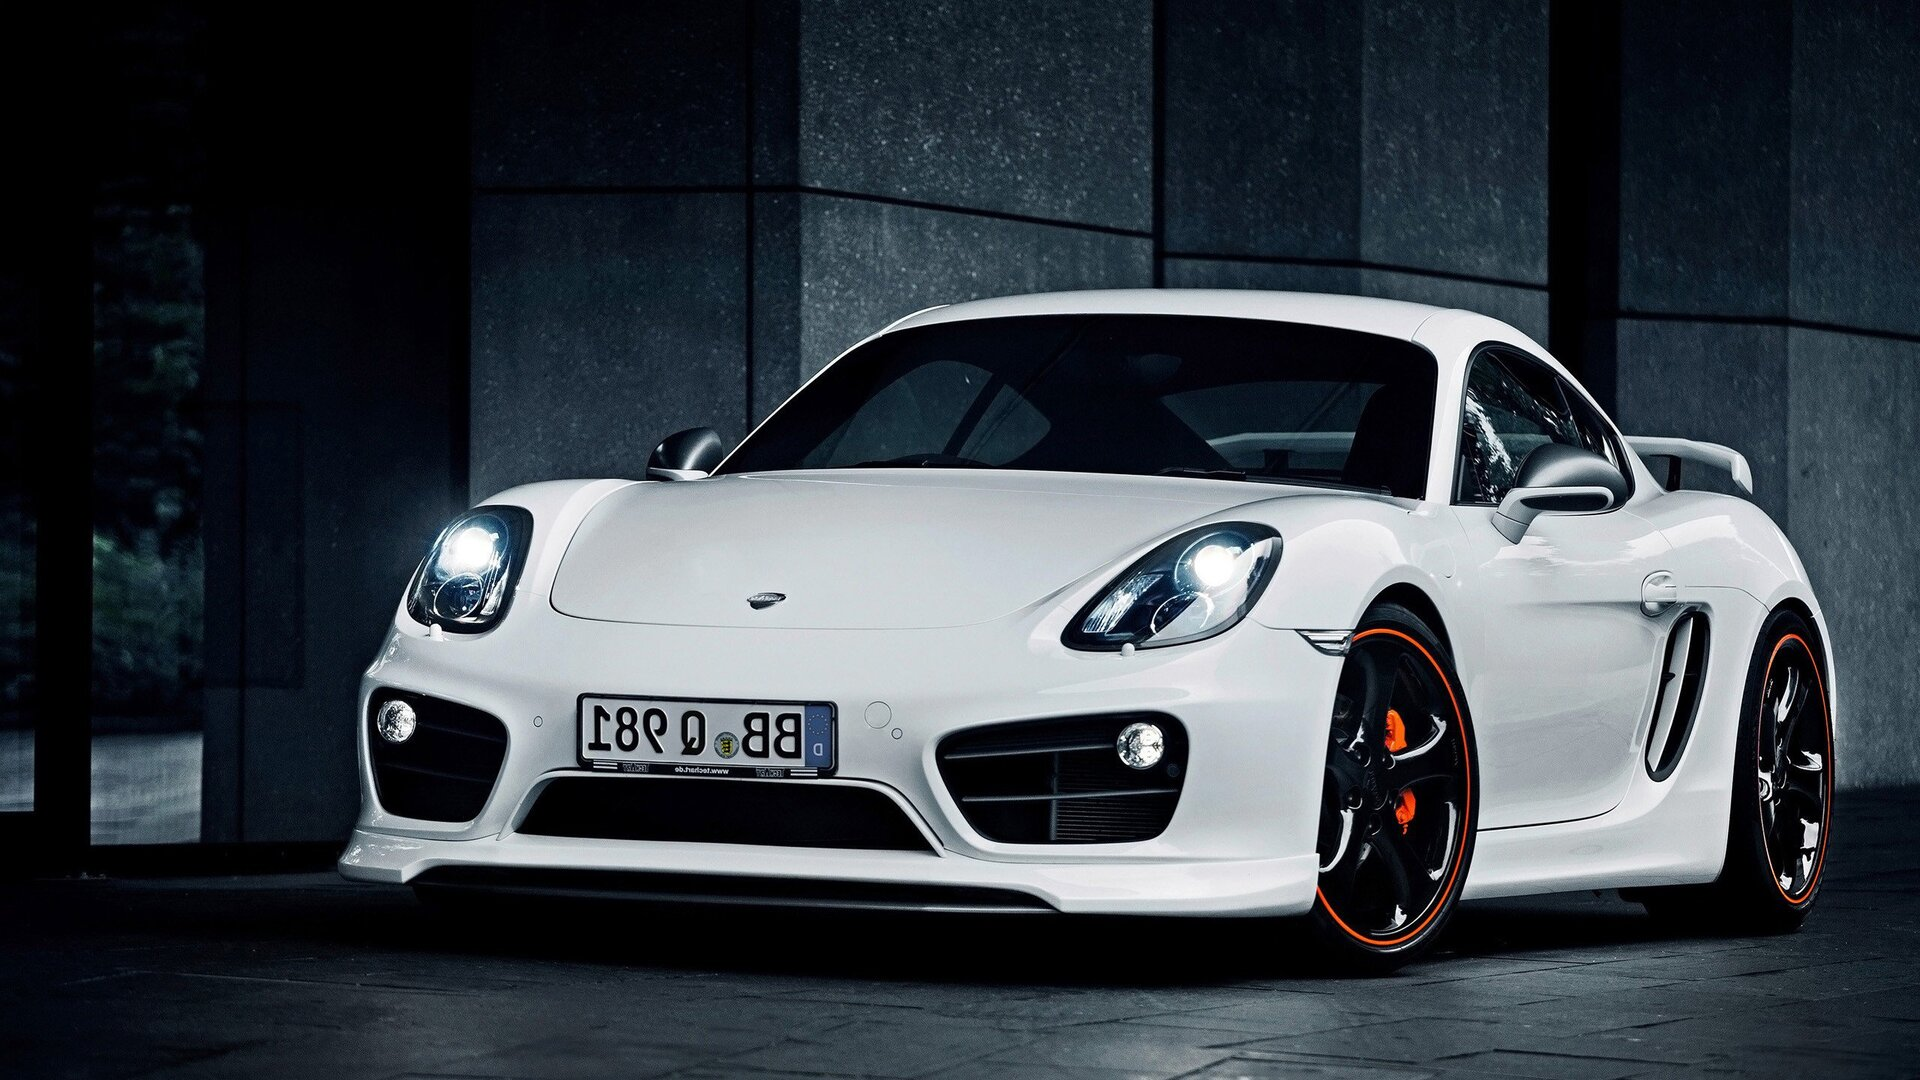 Porsche Hd Wallpapers 1080p: 1920x1080 Porsche Cayman Laptop Full HD 1080P HD 4k